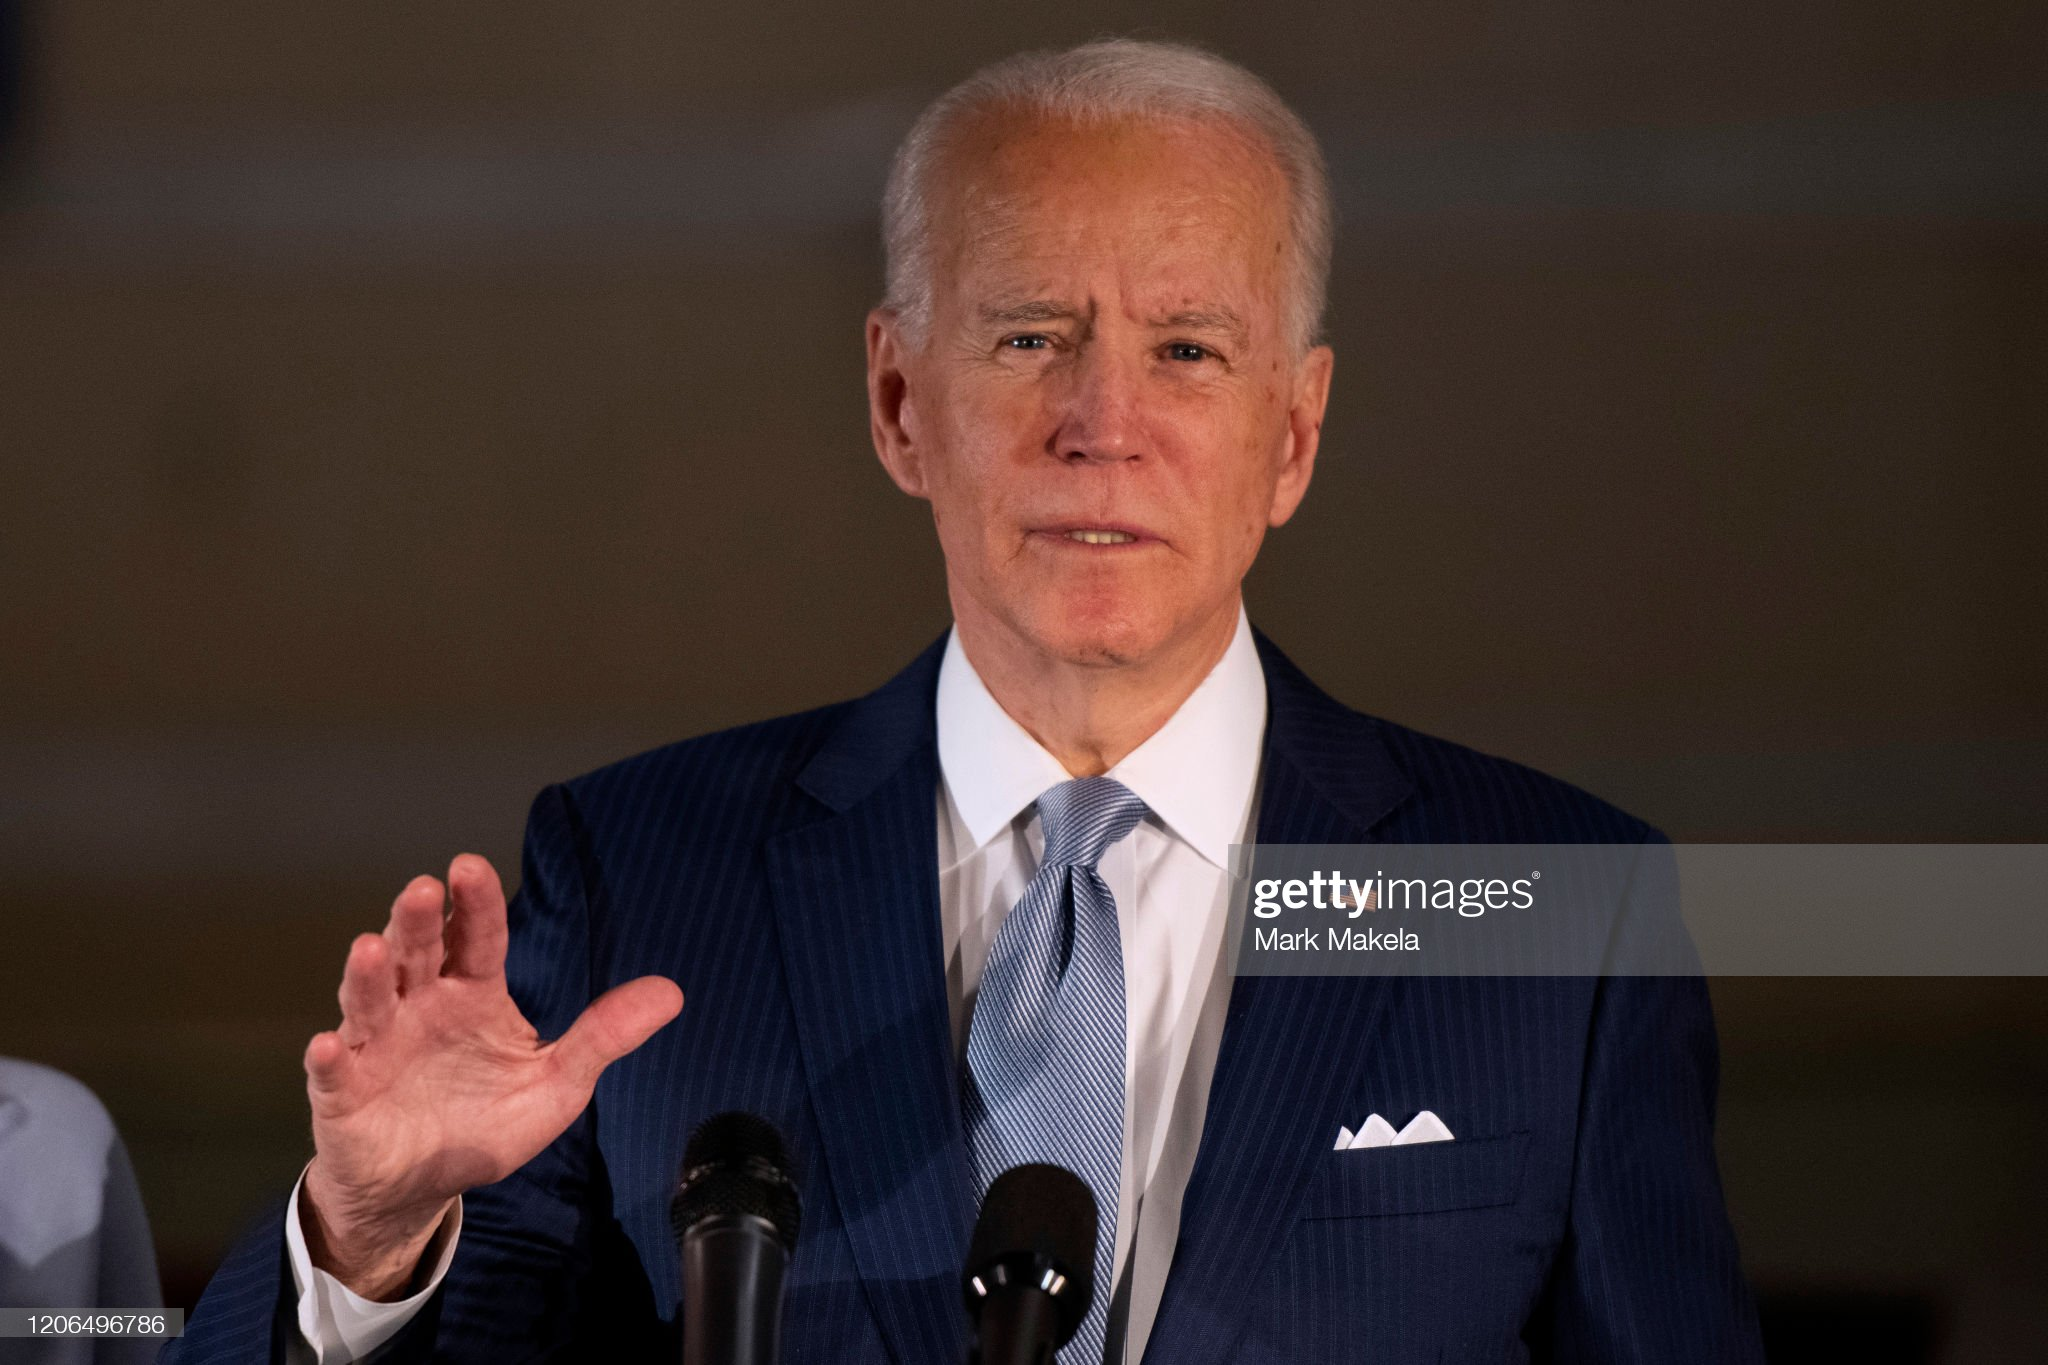 ¿Cuánto mide Joe Biden? - Altura - Real height Democratic-presidential-candidate-former-vice-president-joe-biden-picture-id1206496786?s=2048x2048